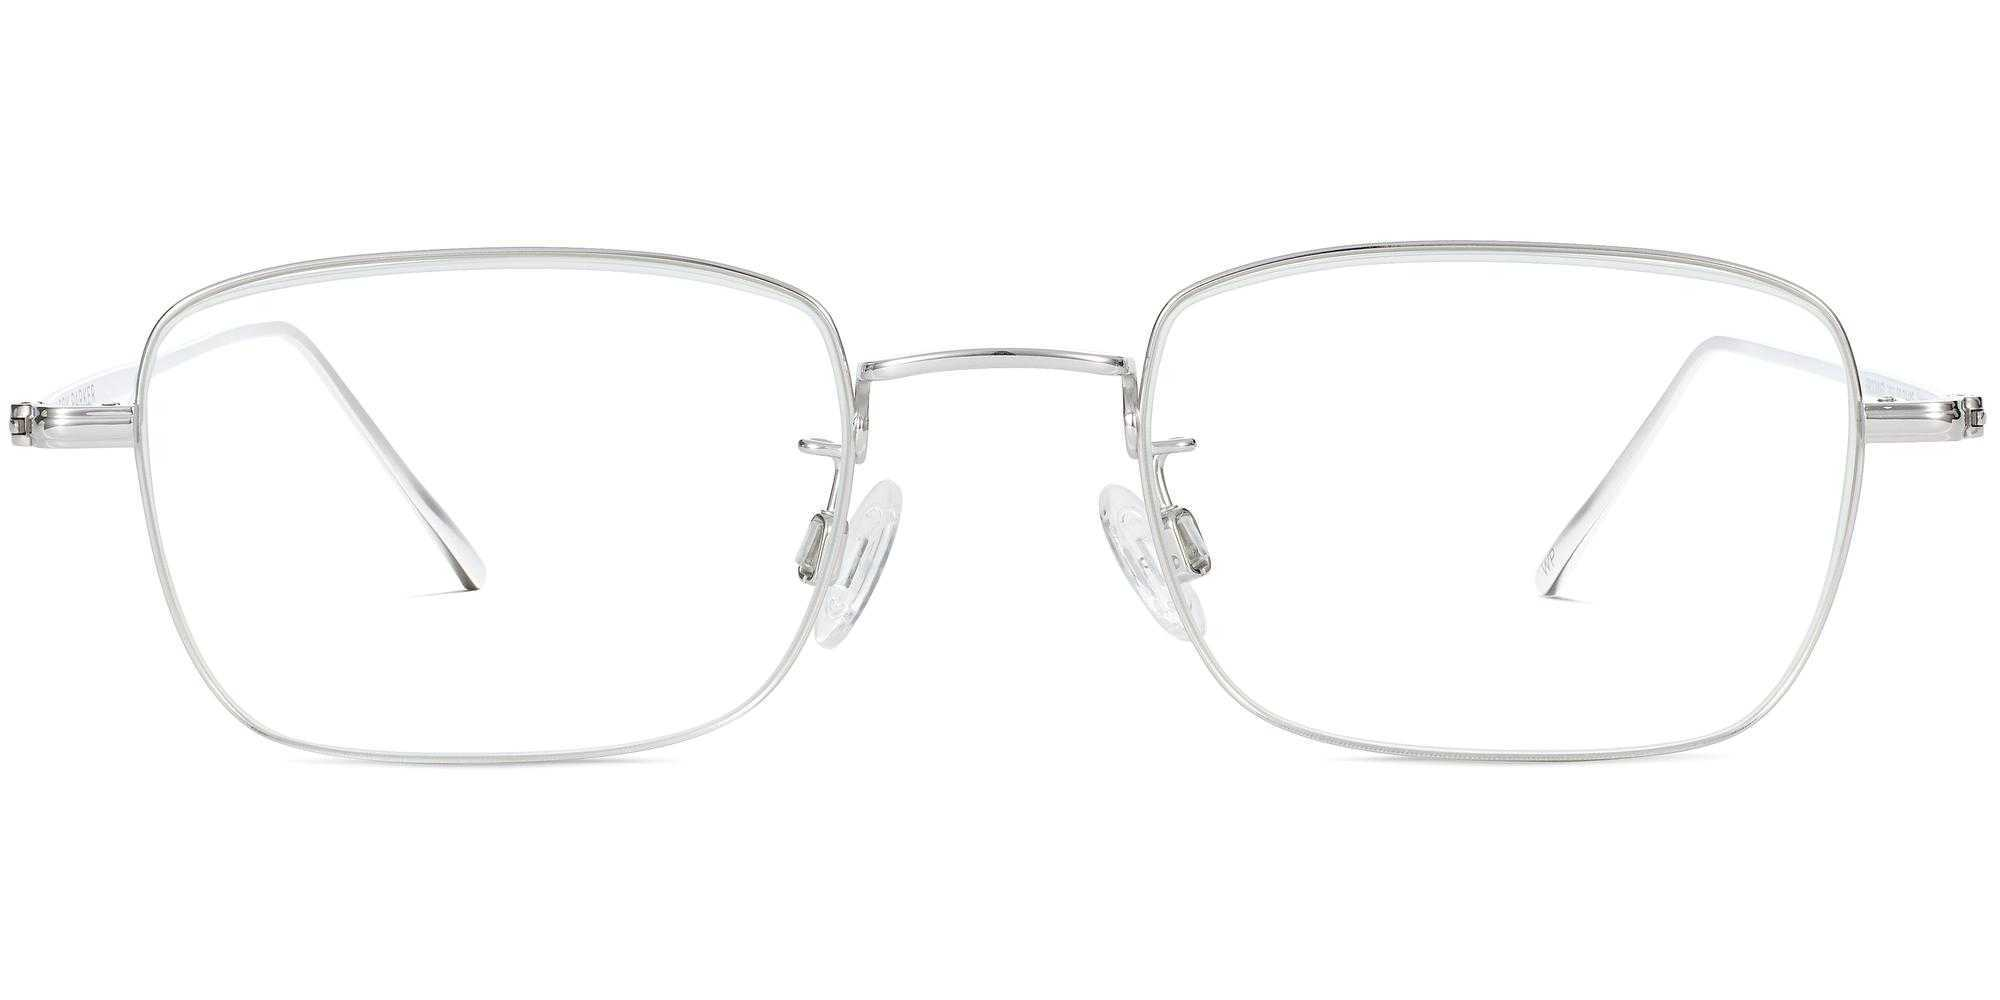 Brookner m eyeglasses in polished silver